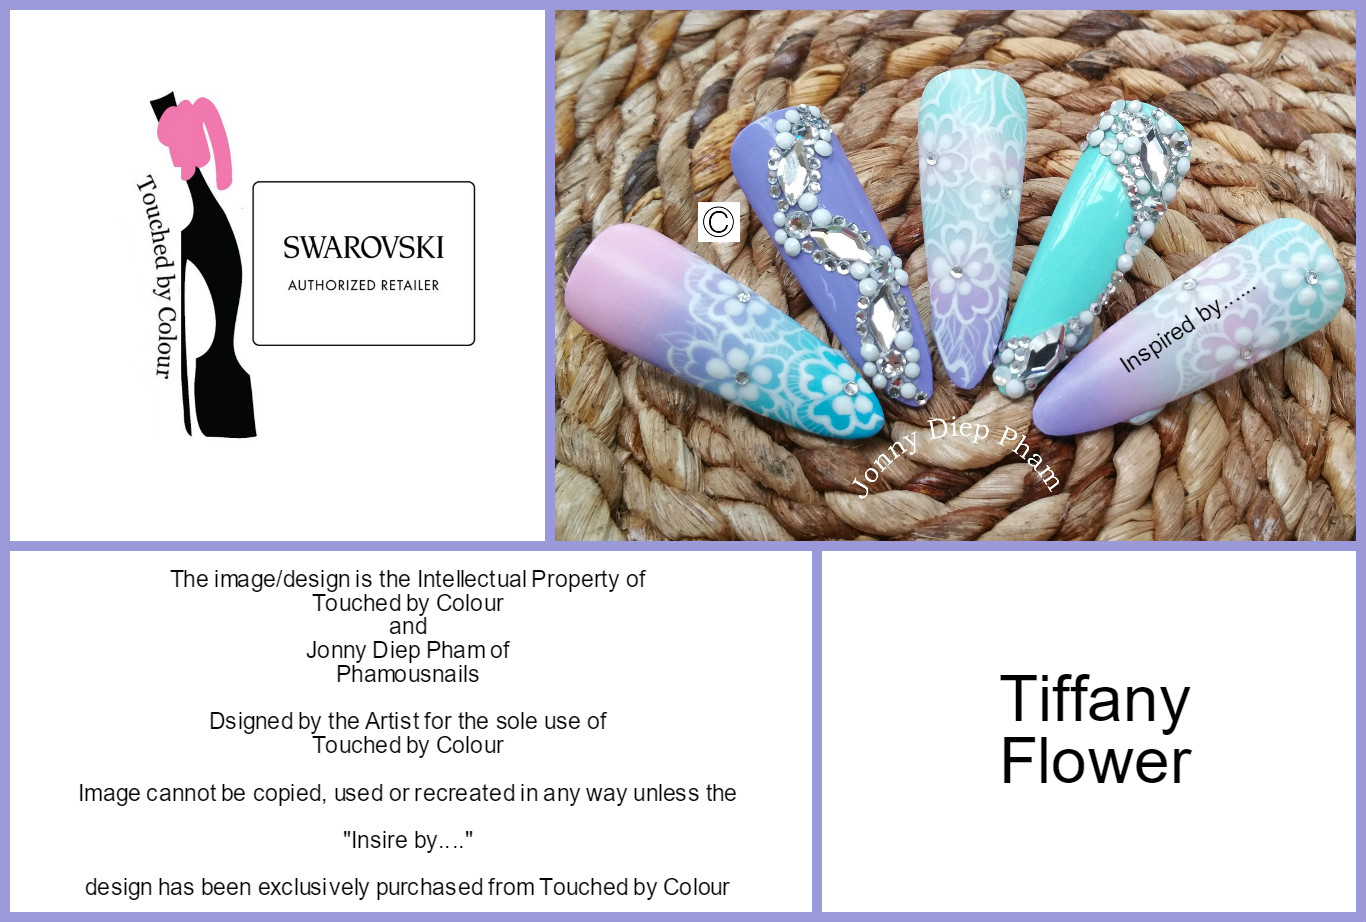 Tiffany Flower1.jpg